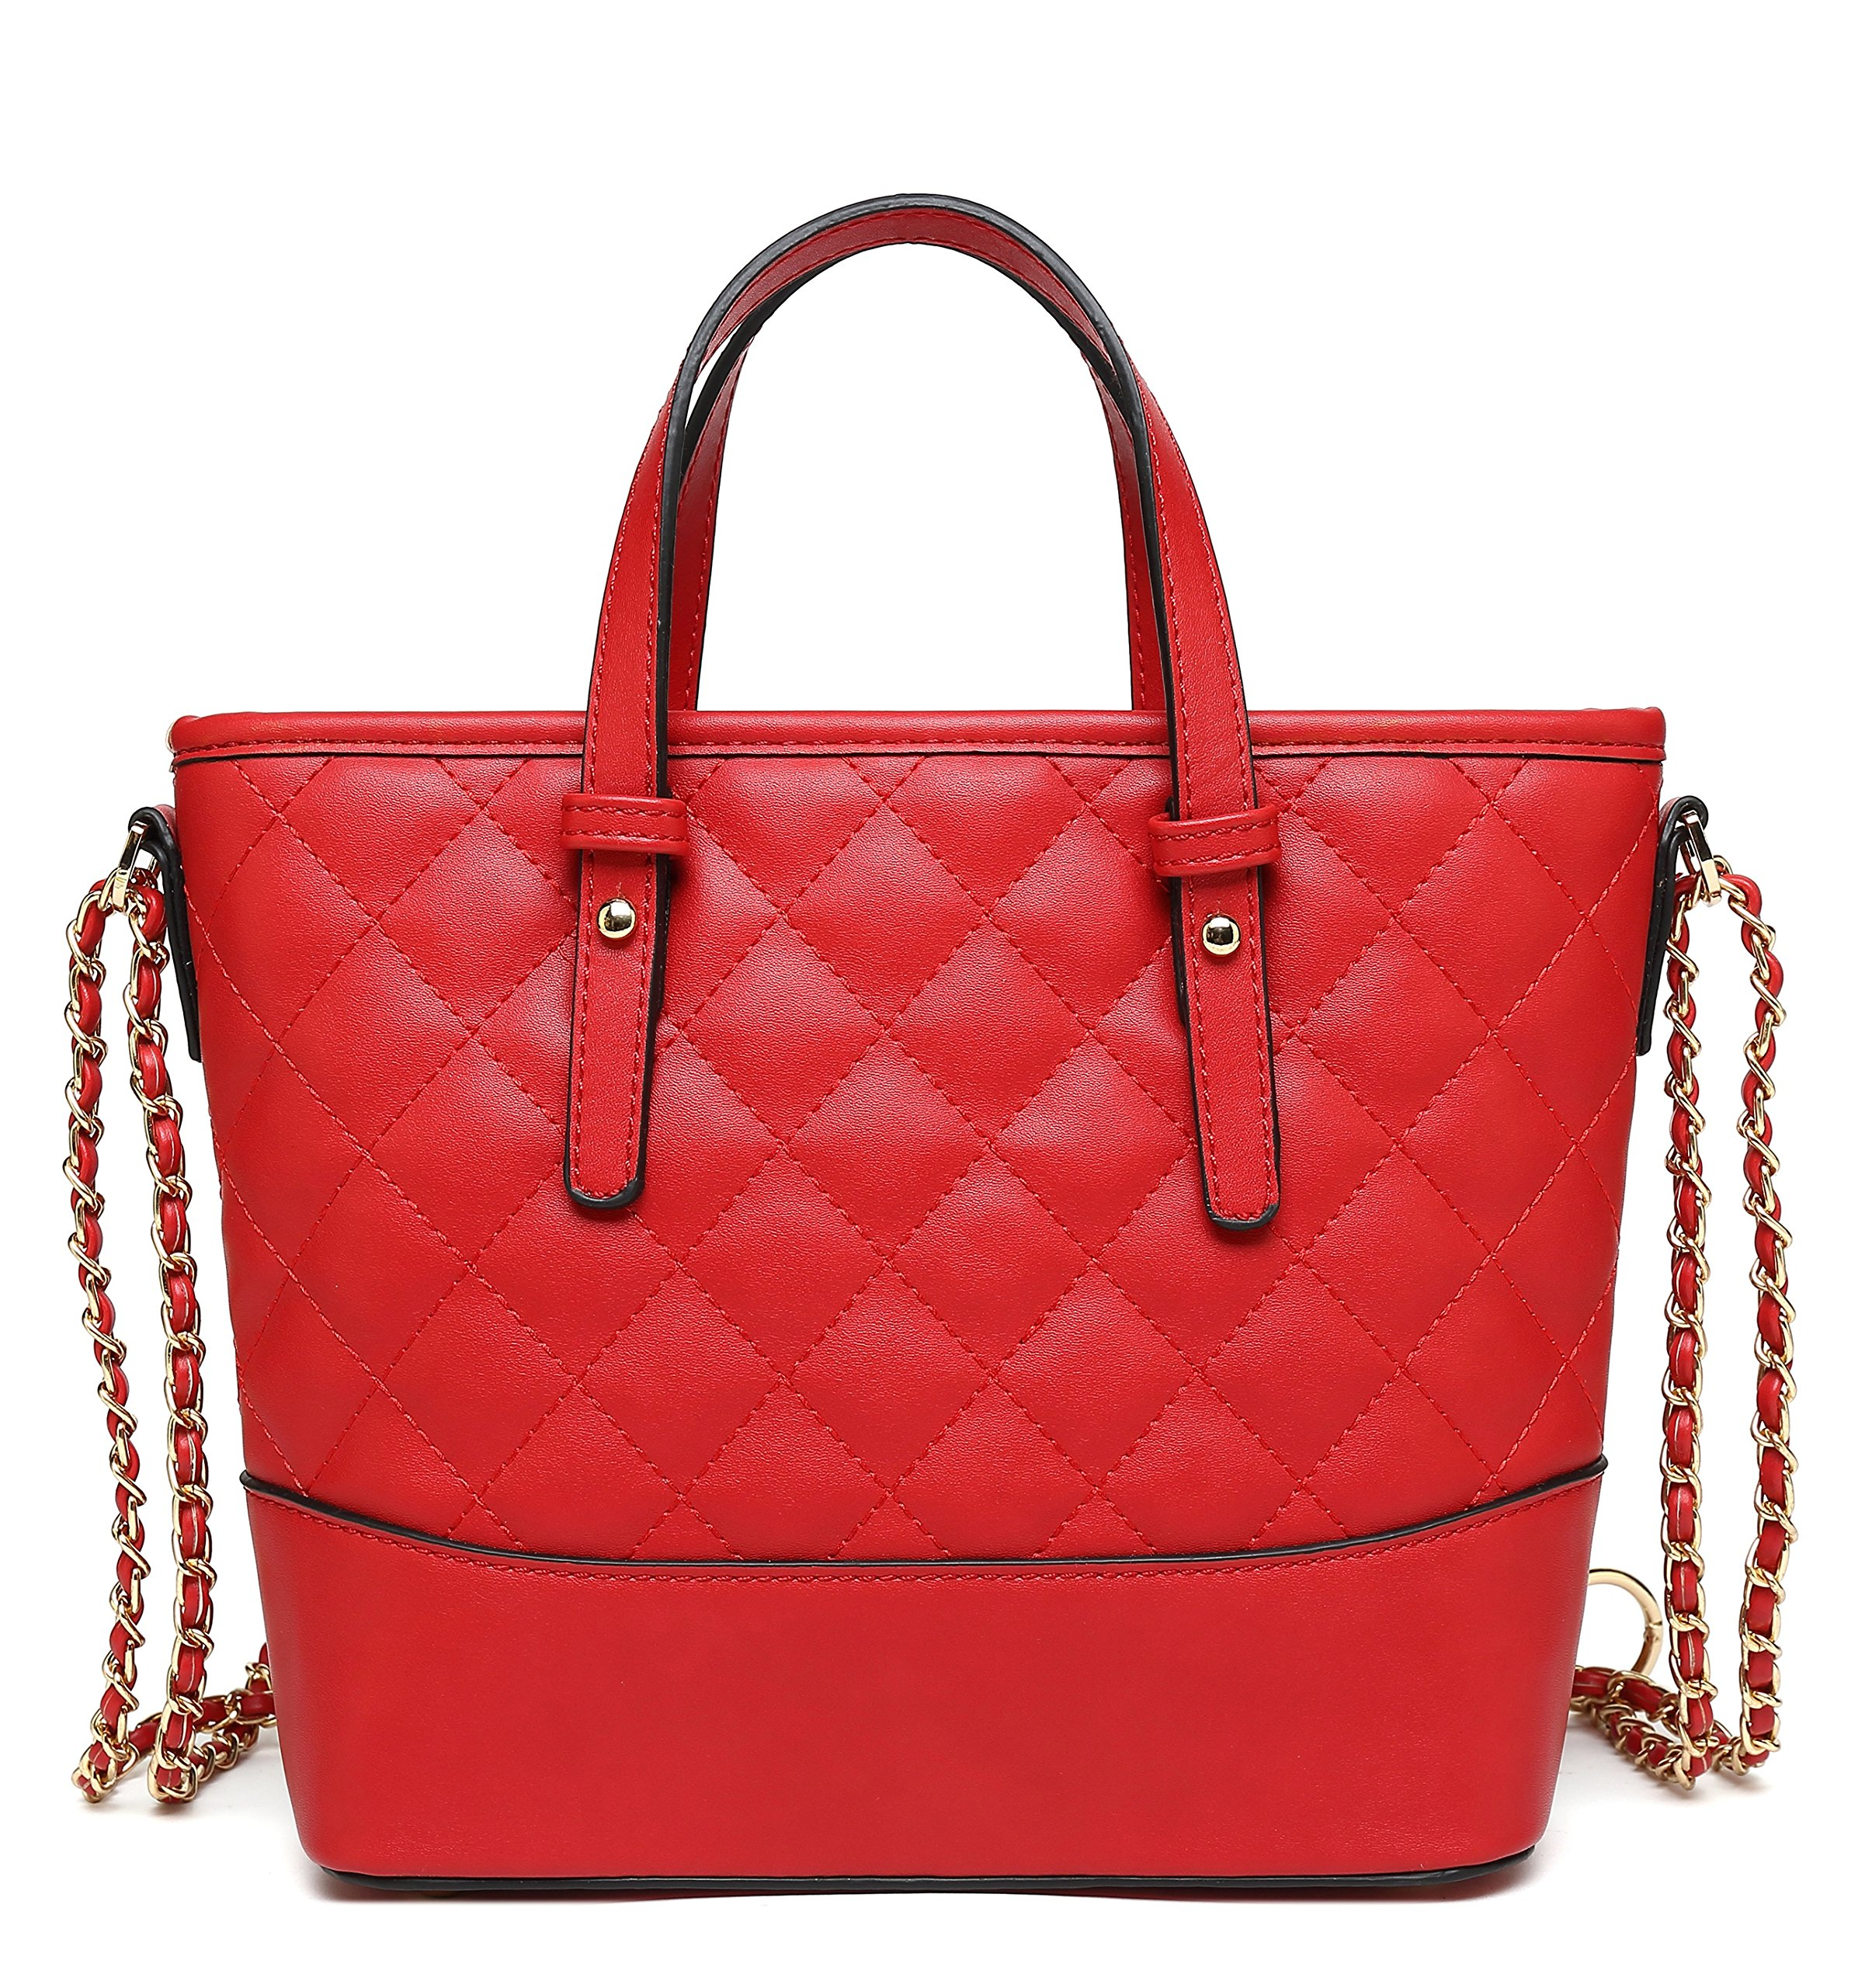 Scarleton Chic Quilted Satchel H1048207110 - Red C